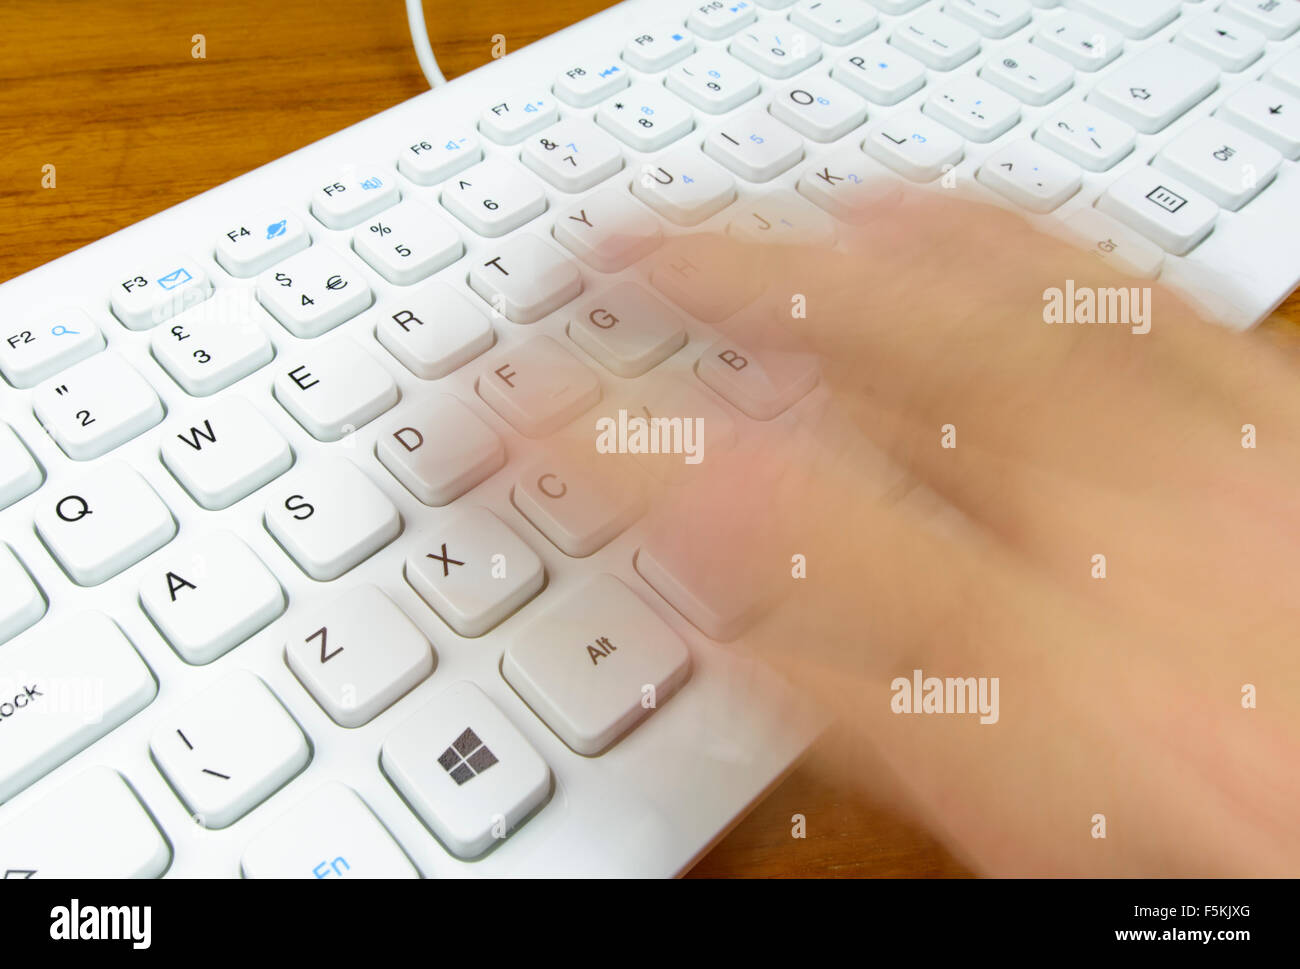 Typing fast on a computer keyboard, with the typists hand blurred to infer speed. - Stock Image